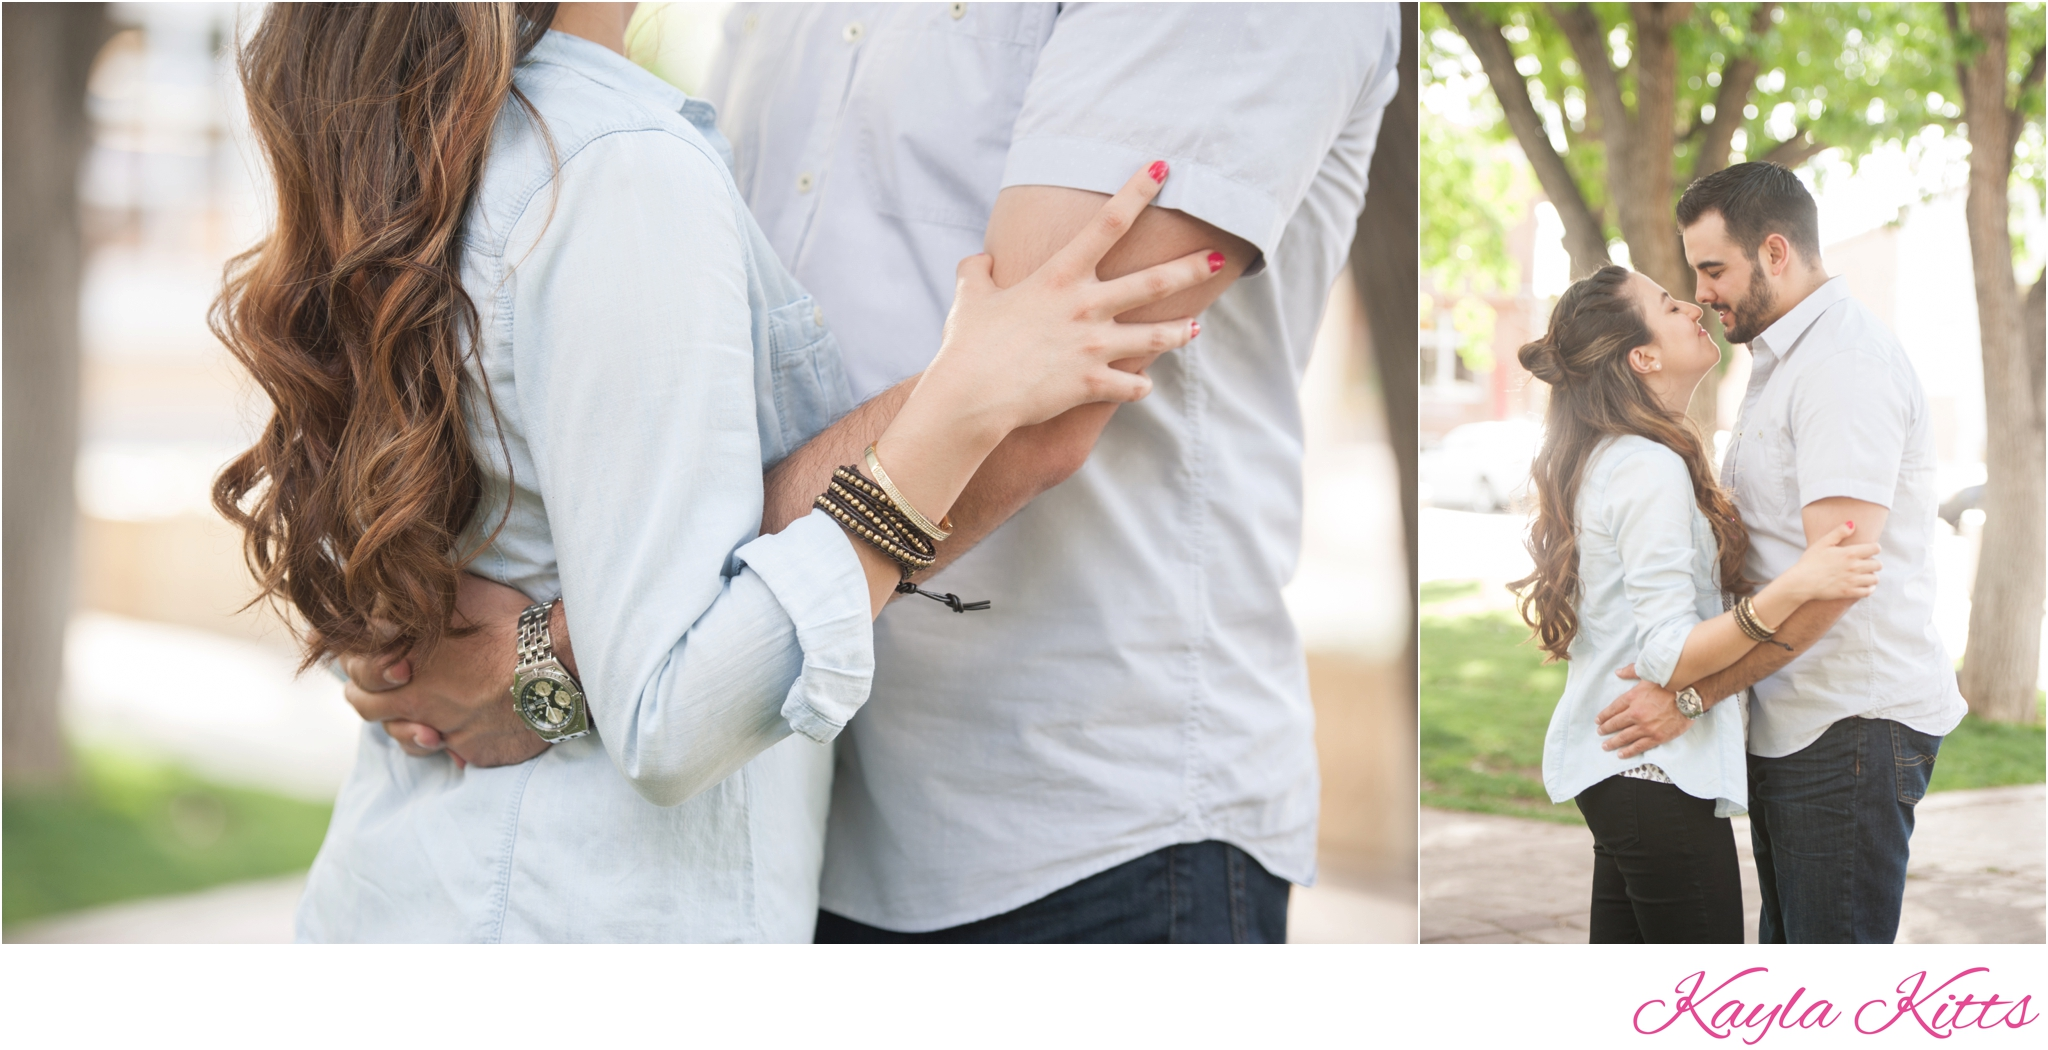 kayla kitts photography - albuquerque wedding photographer - green jeans - brewery engagement session - old town - destination wedding - cabo wedding photographer - santa fe brewery_0014.jpg